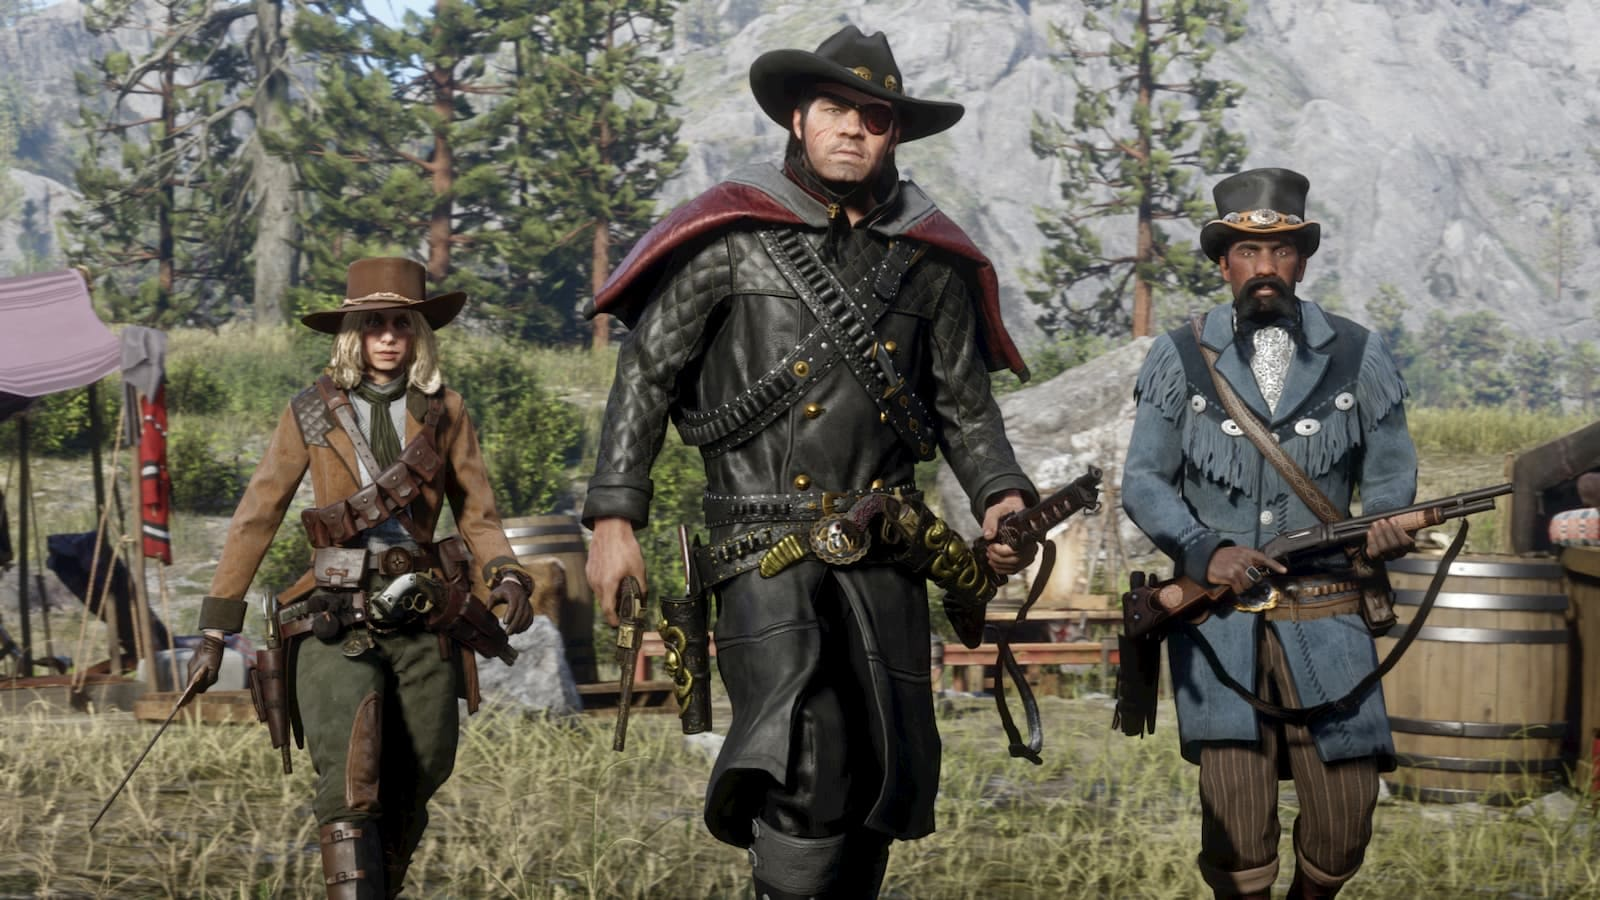 Red Dead Online' players can pick up work as bounty hunters